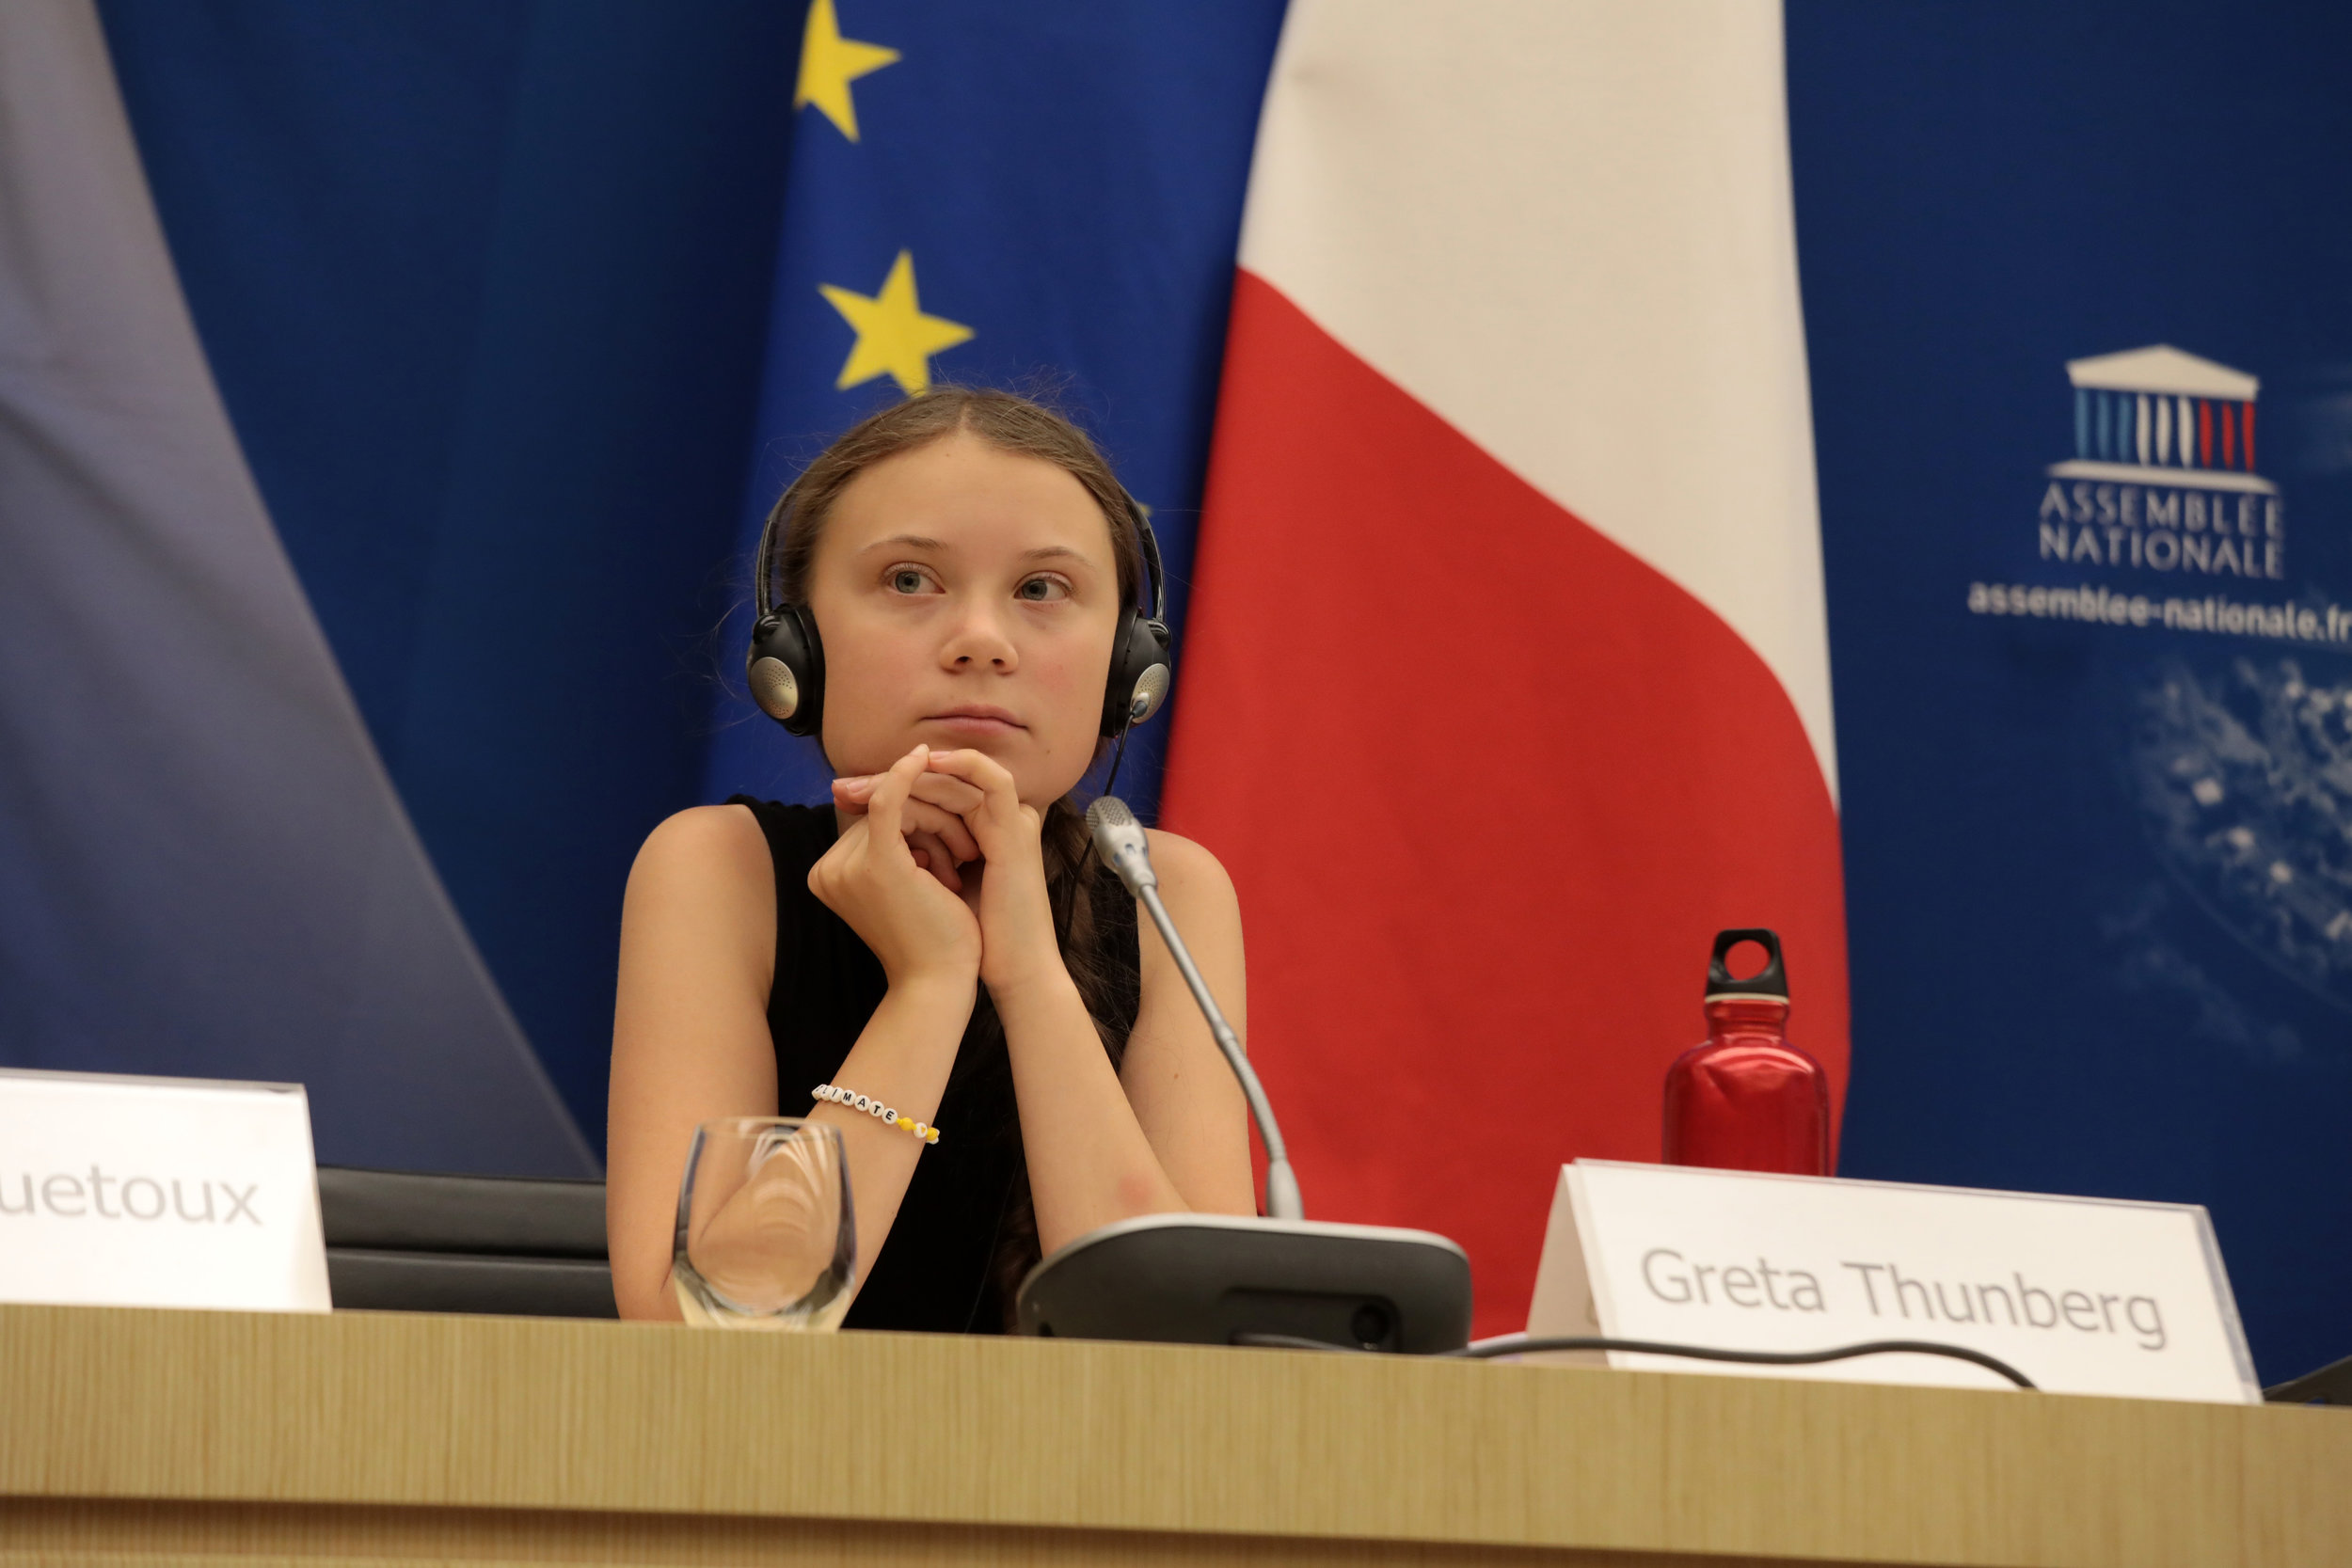 Micah photographs Greta Thunberg for Getty Images, photo used in RollingStone - Micah's photographs of Greta Thunberg addressing the National Assembly in Paris on July 23 2019 are featured on Getty Images and used in RollingStone, GQ, and Huffington Post France. Her message was that countries and companies had to do more about the climate emergency.